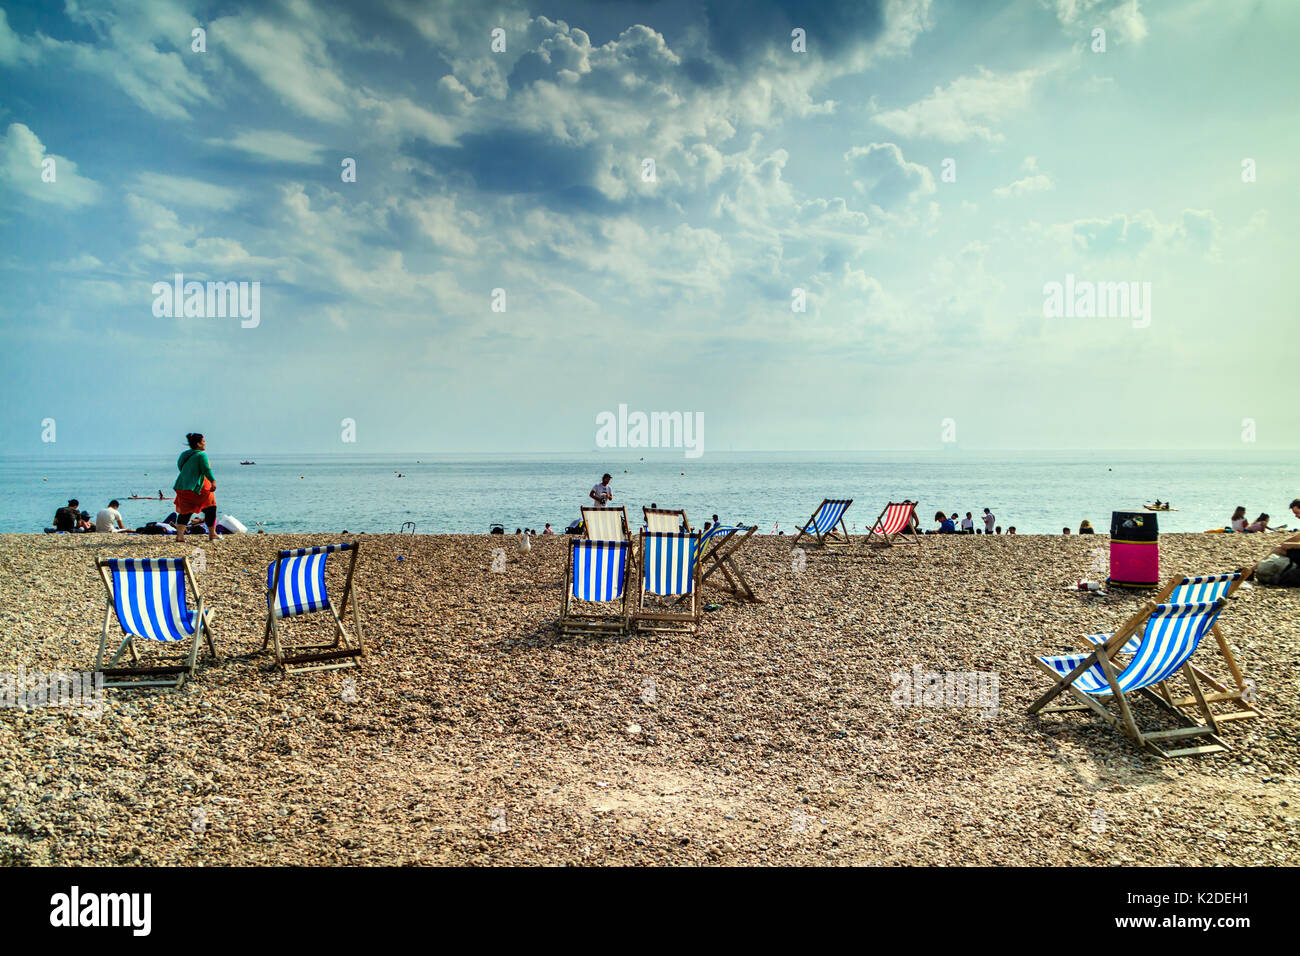 People relaxing on Brighton Beach, Brighton, Sussex, UK, Summer 2017 - Stock Image